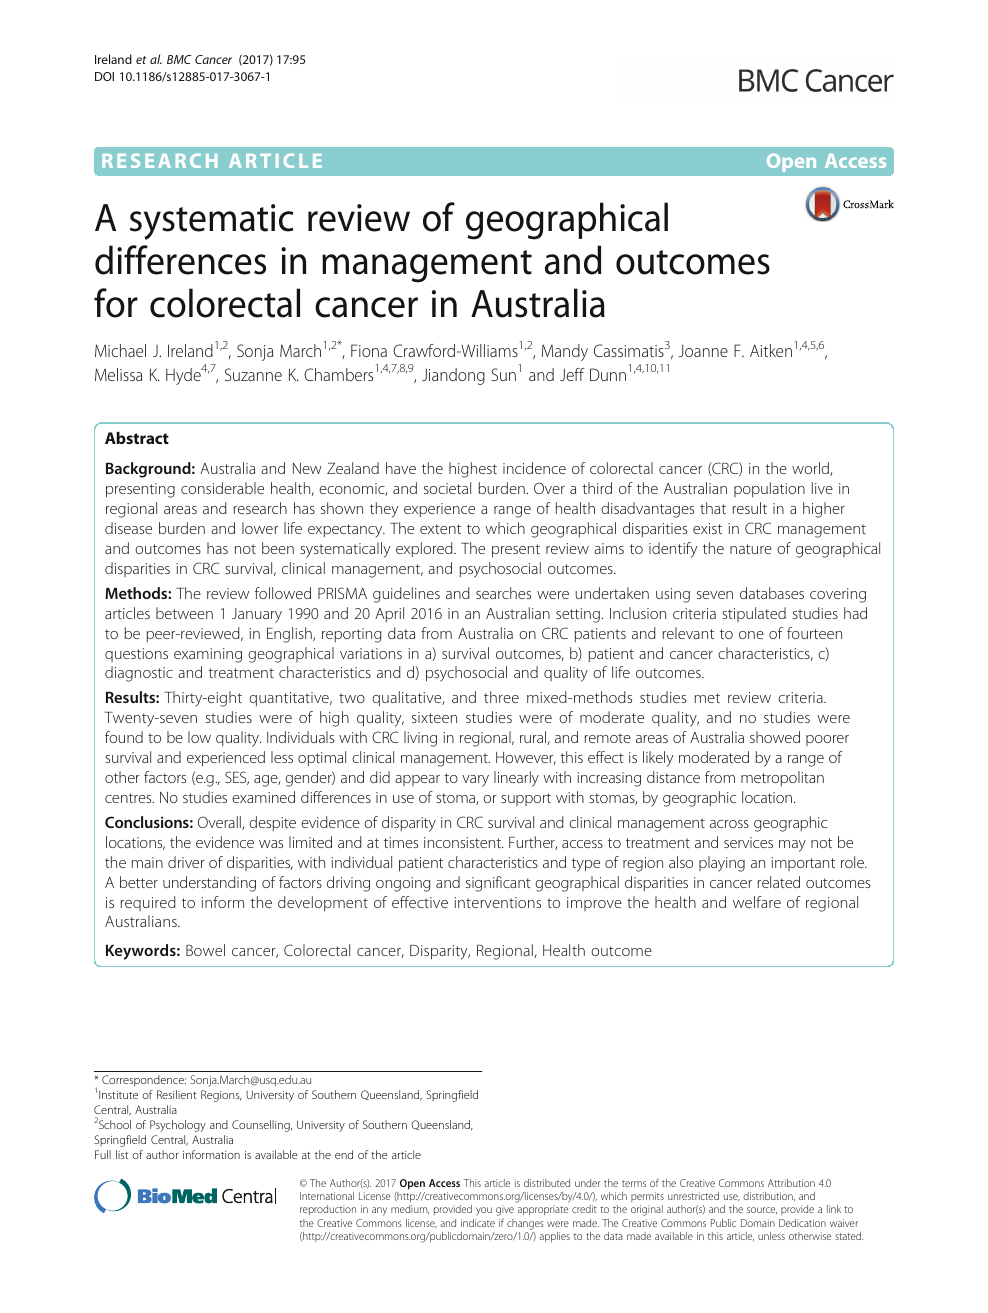 A systematic review of geographical differences in management and